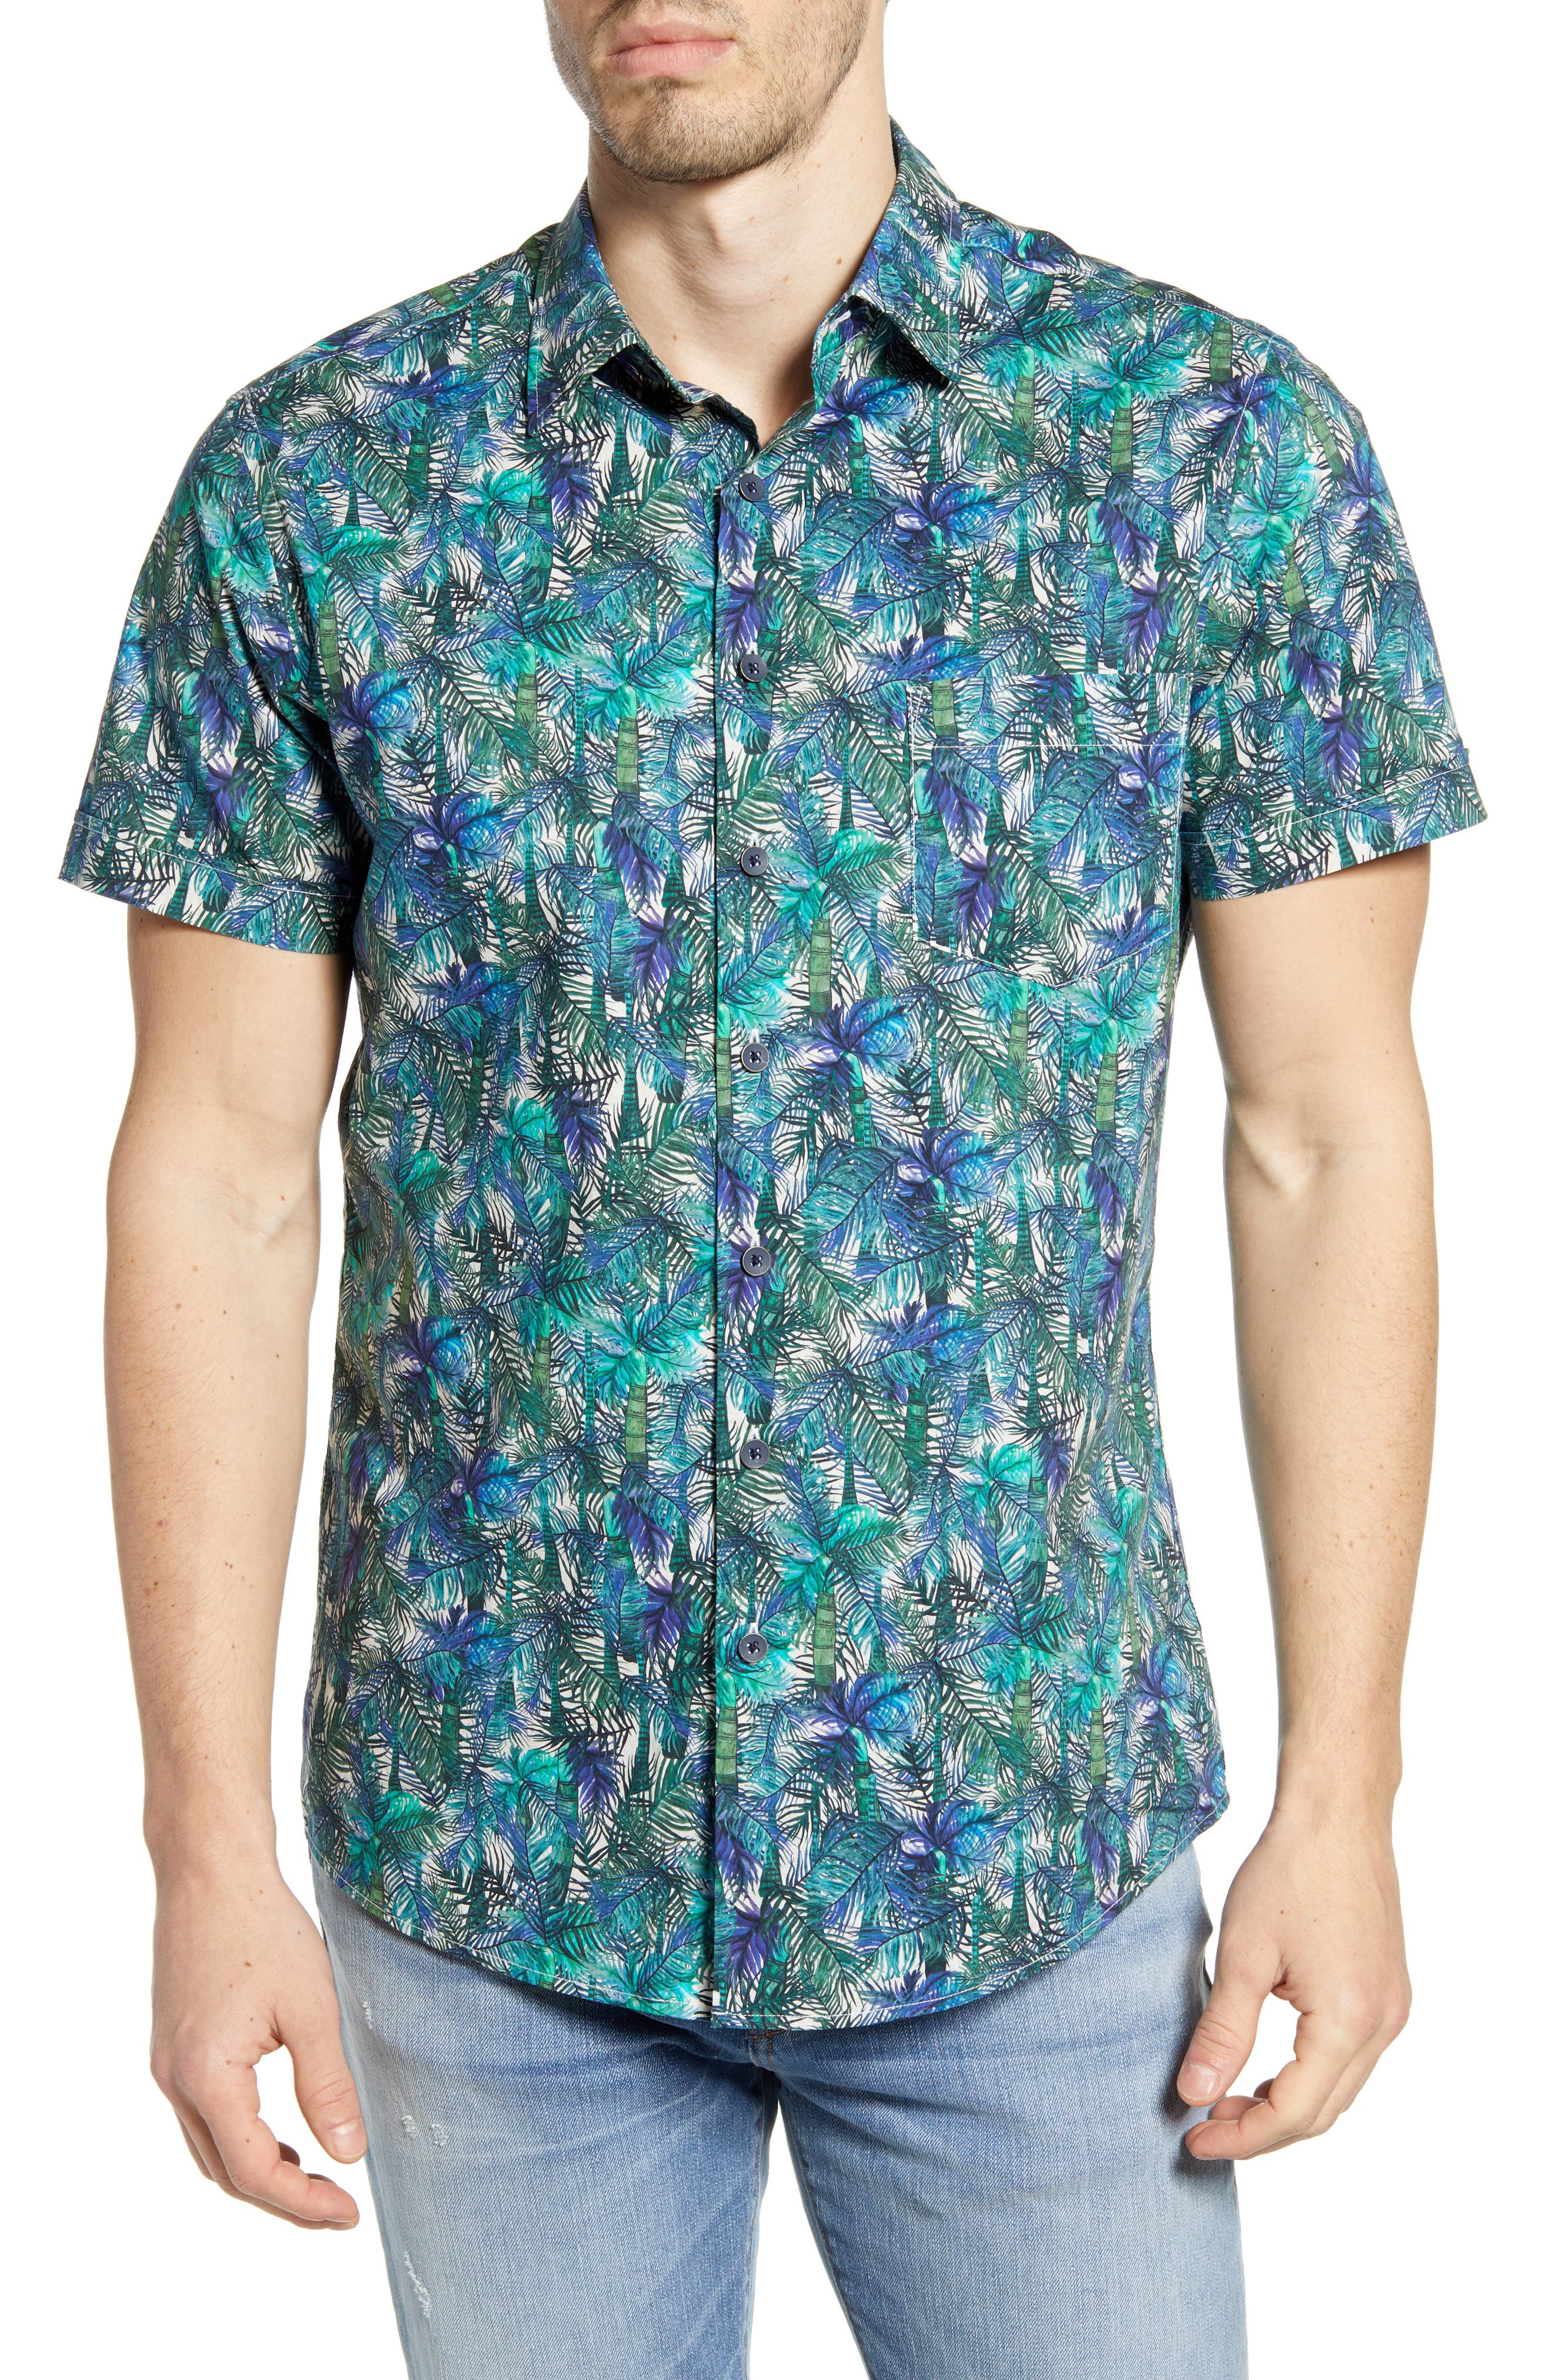 RODD AND GUNN Collins Bay Tropical Print Short Sleeve Button-Up Shirt at Nordstrom Rack